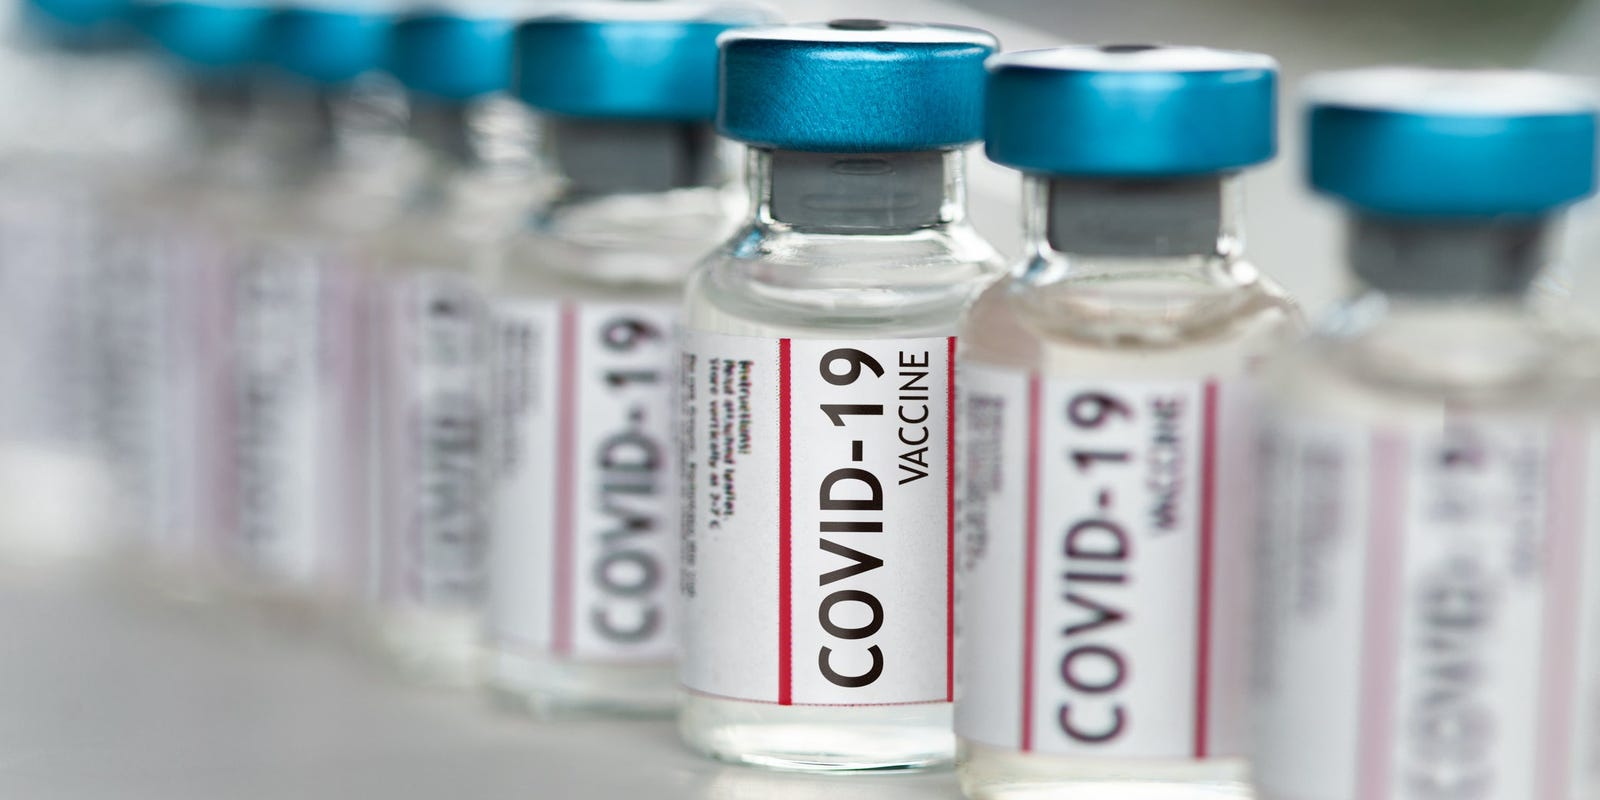 Fact check: COVID-19 vaccinated people don't 'shed' virus, infect others